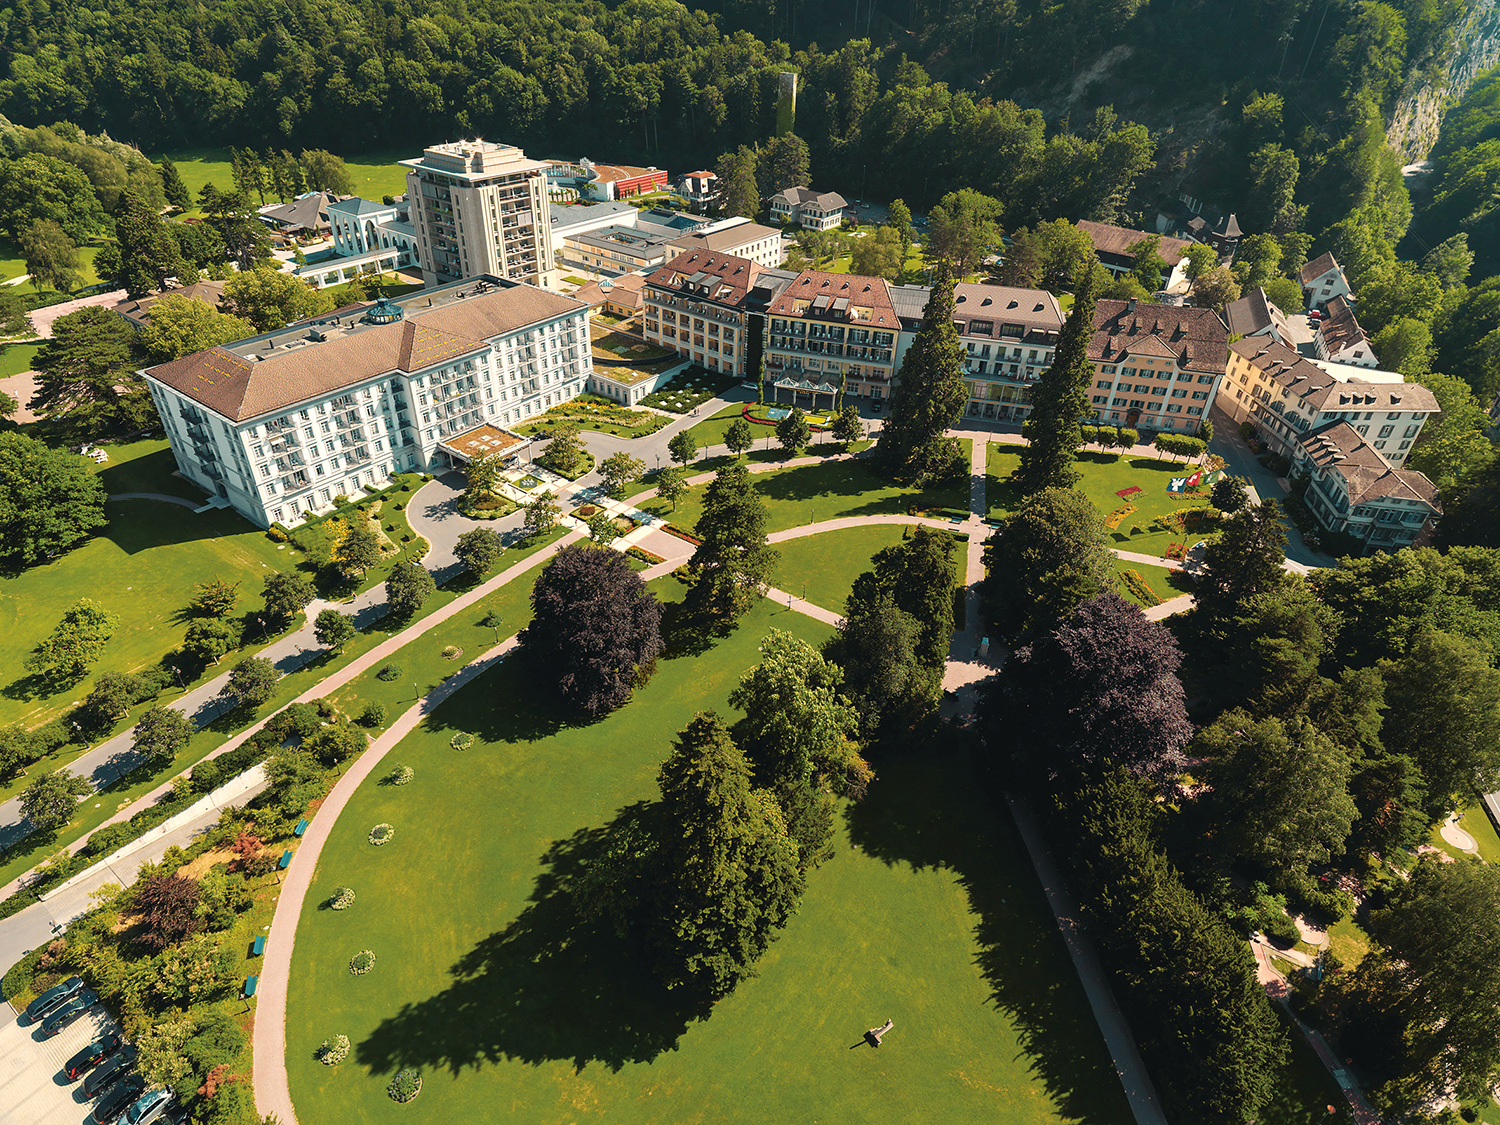 Located in Switzerland, Grand Resort Bad Ragaz is the leading wellbeing and medical health resort in Europe.